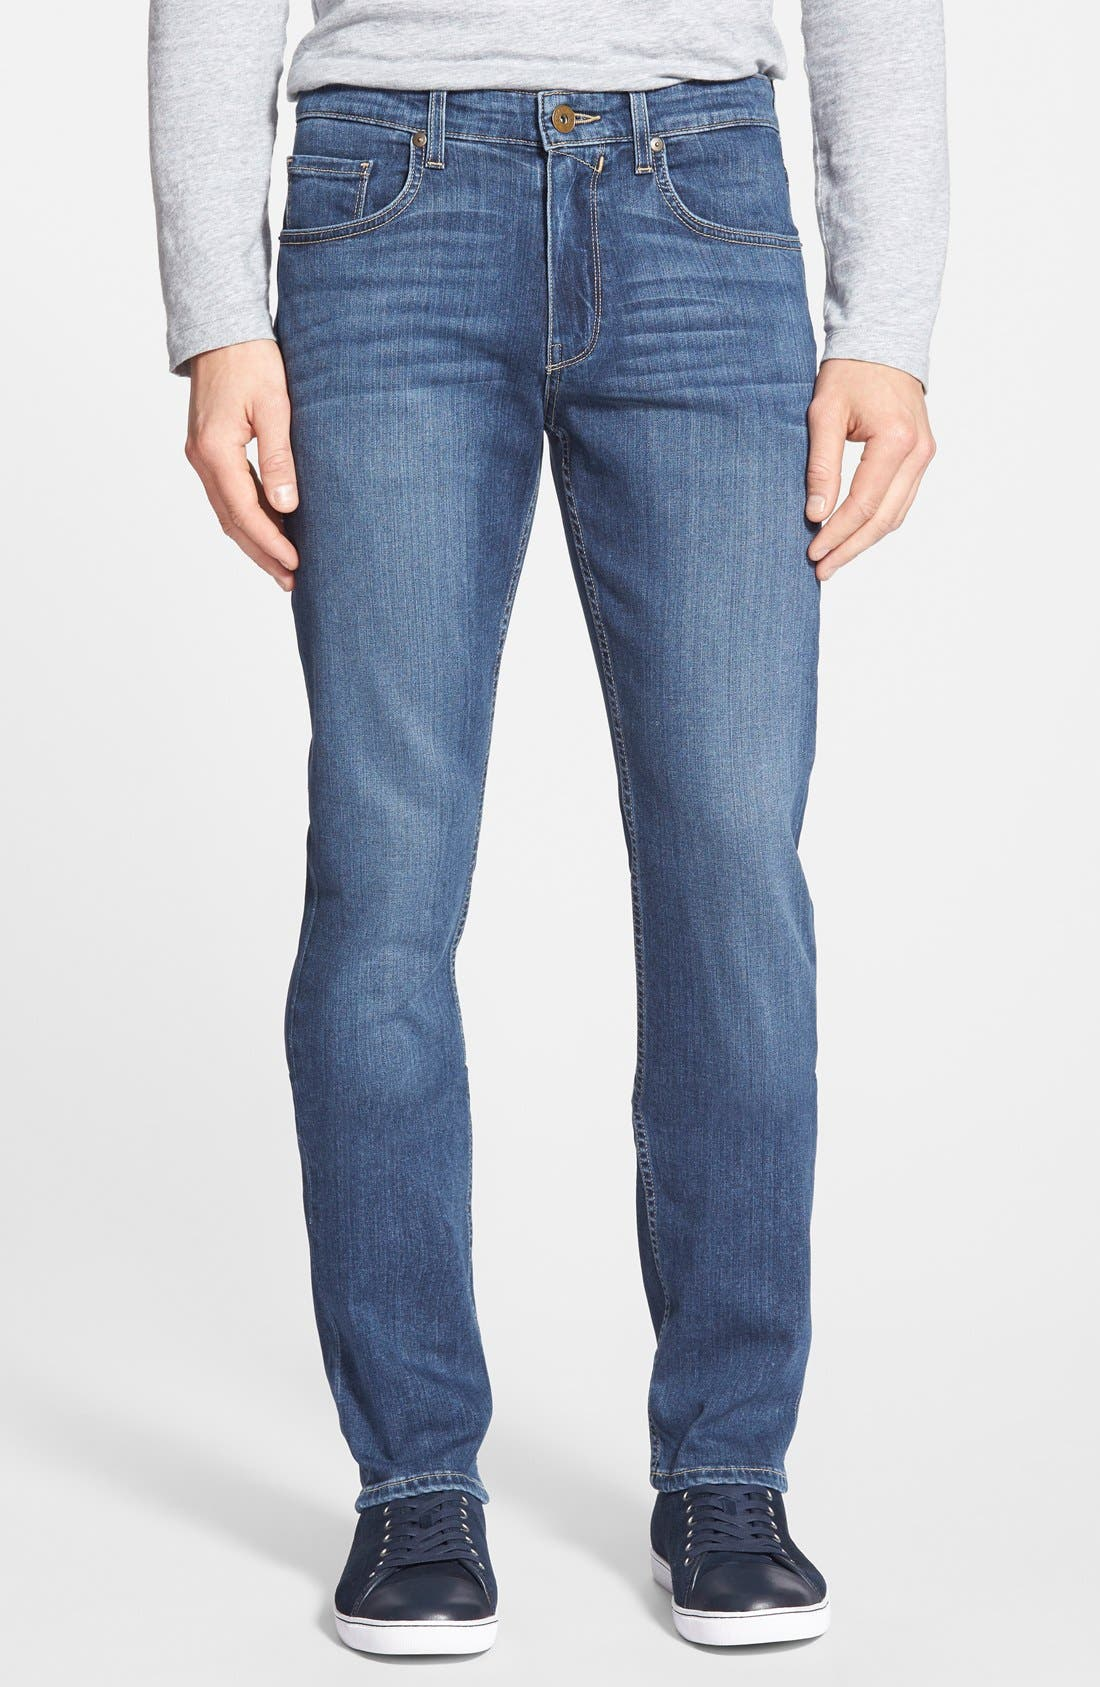 PAIGE 'Federal - TRANSCEND' Slim Straight Leg Jeans